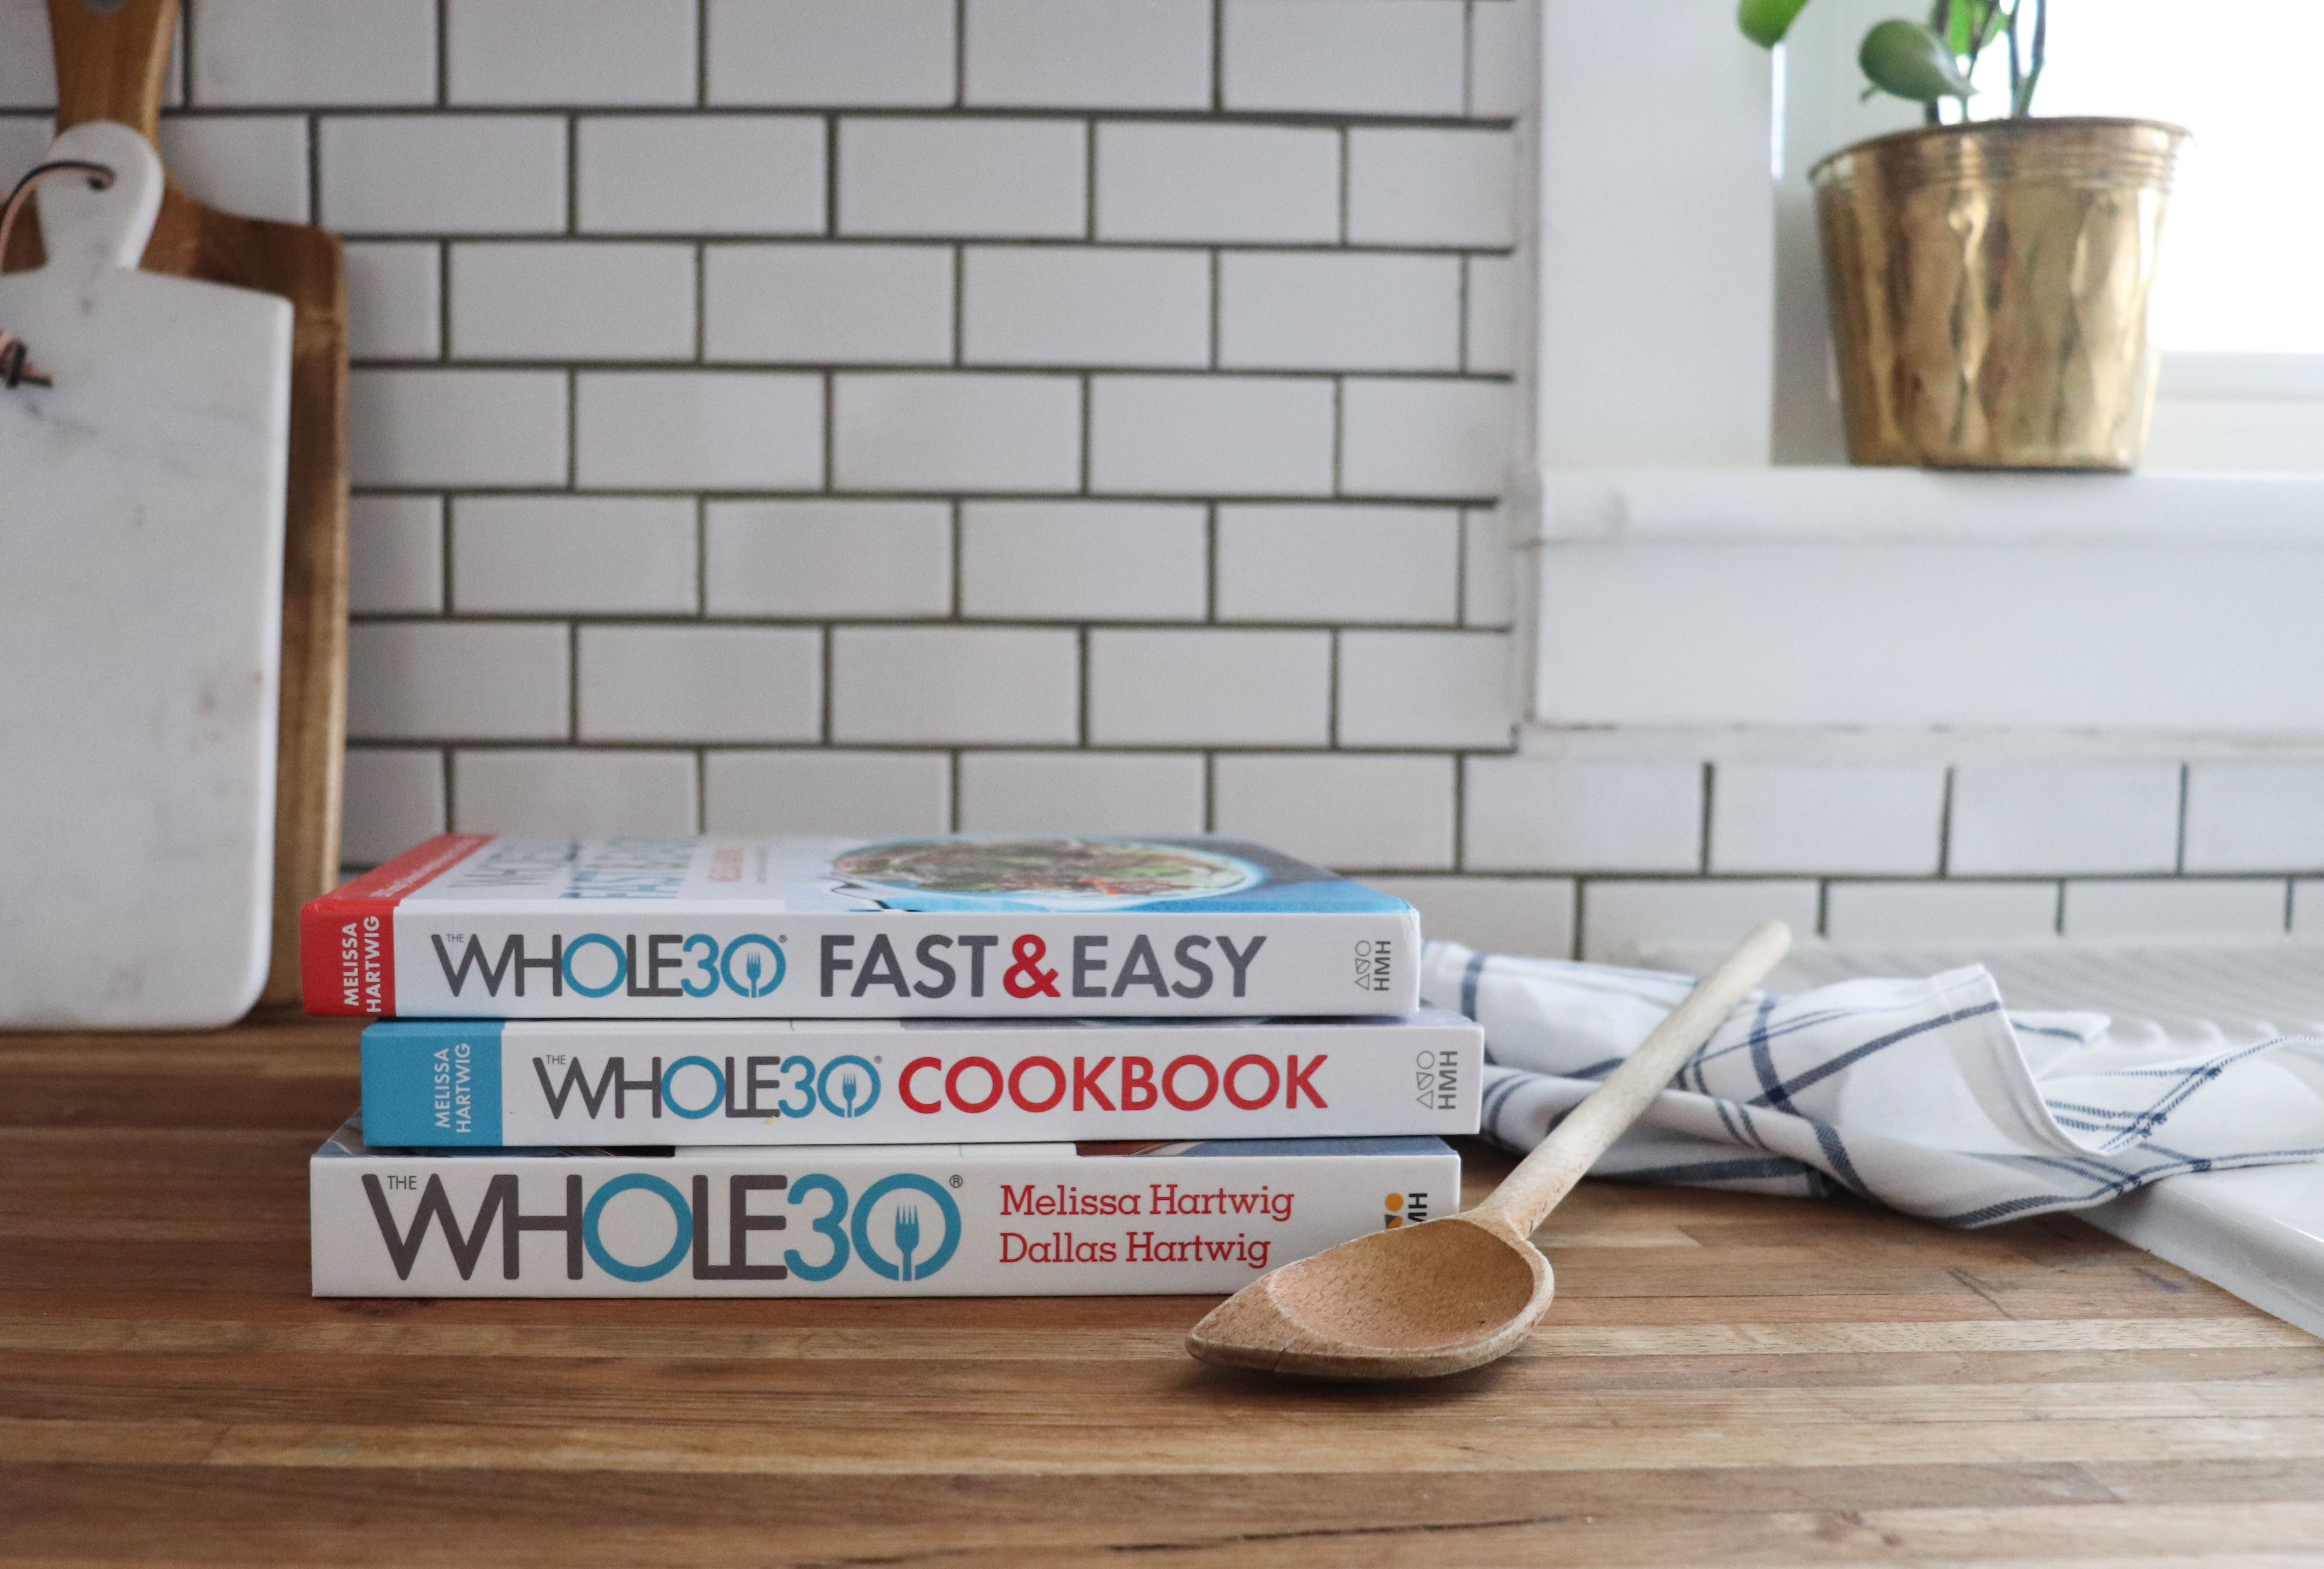 Amazon Whole30 Shopping Guide Whole 30, Little peach